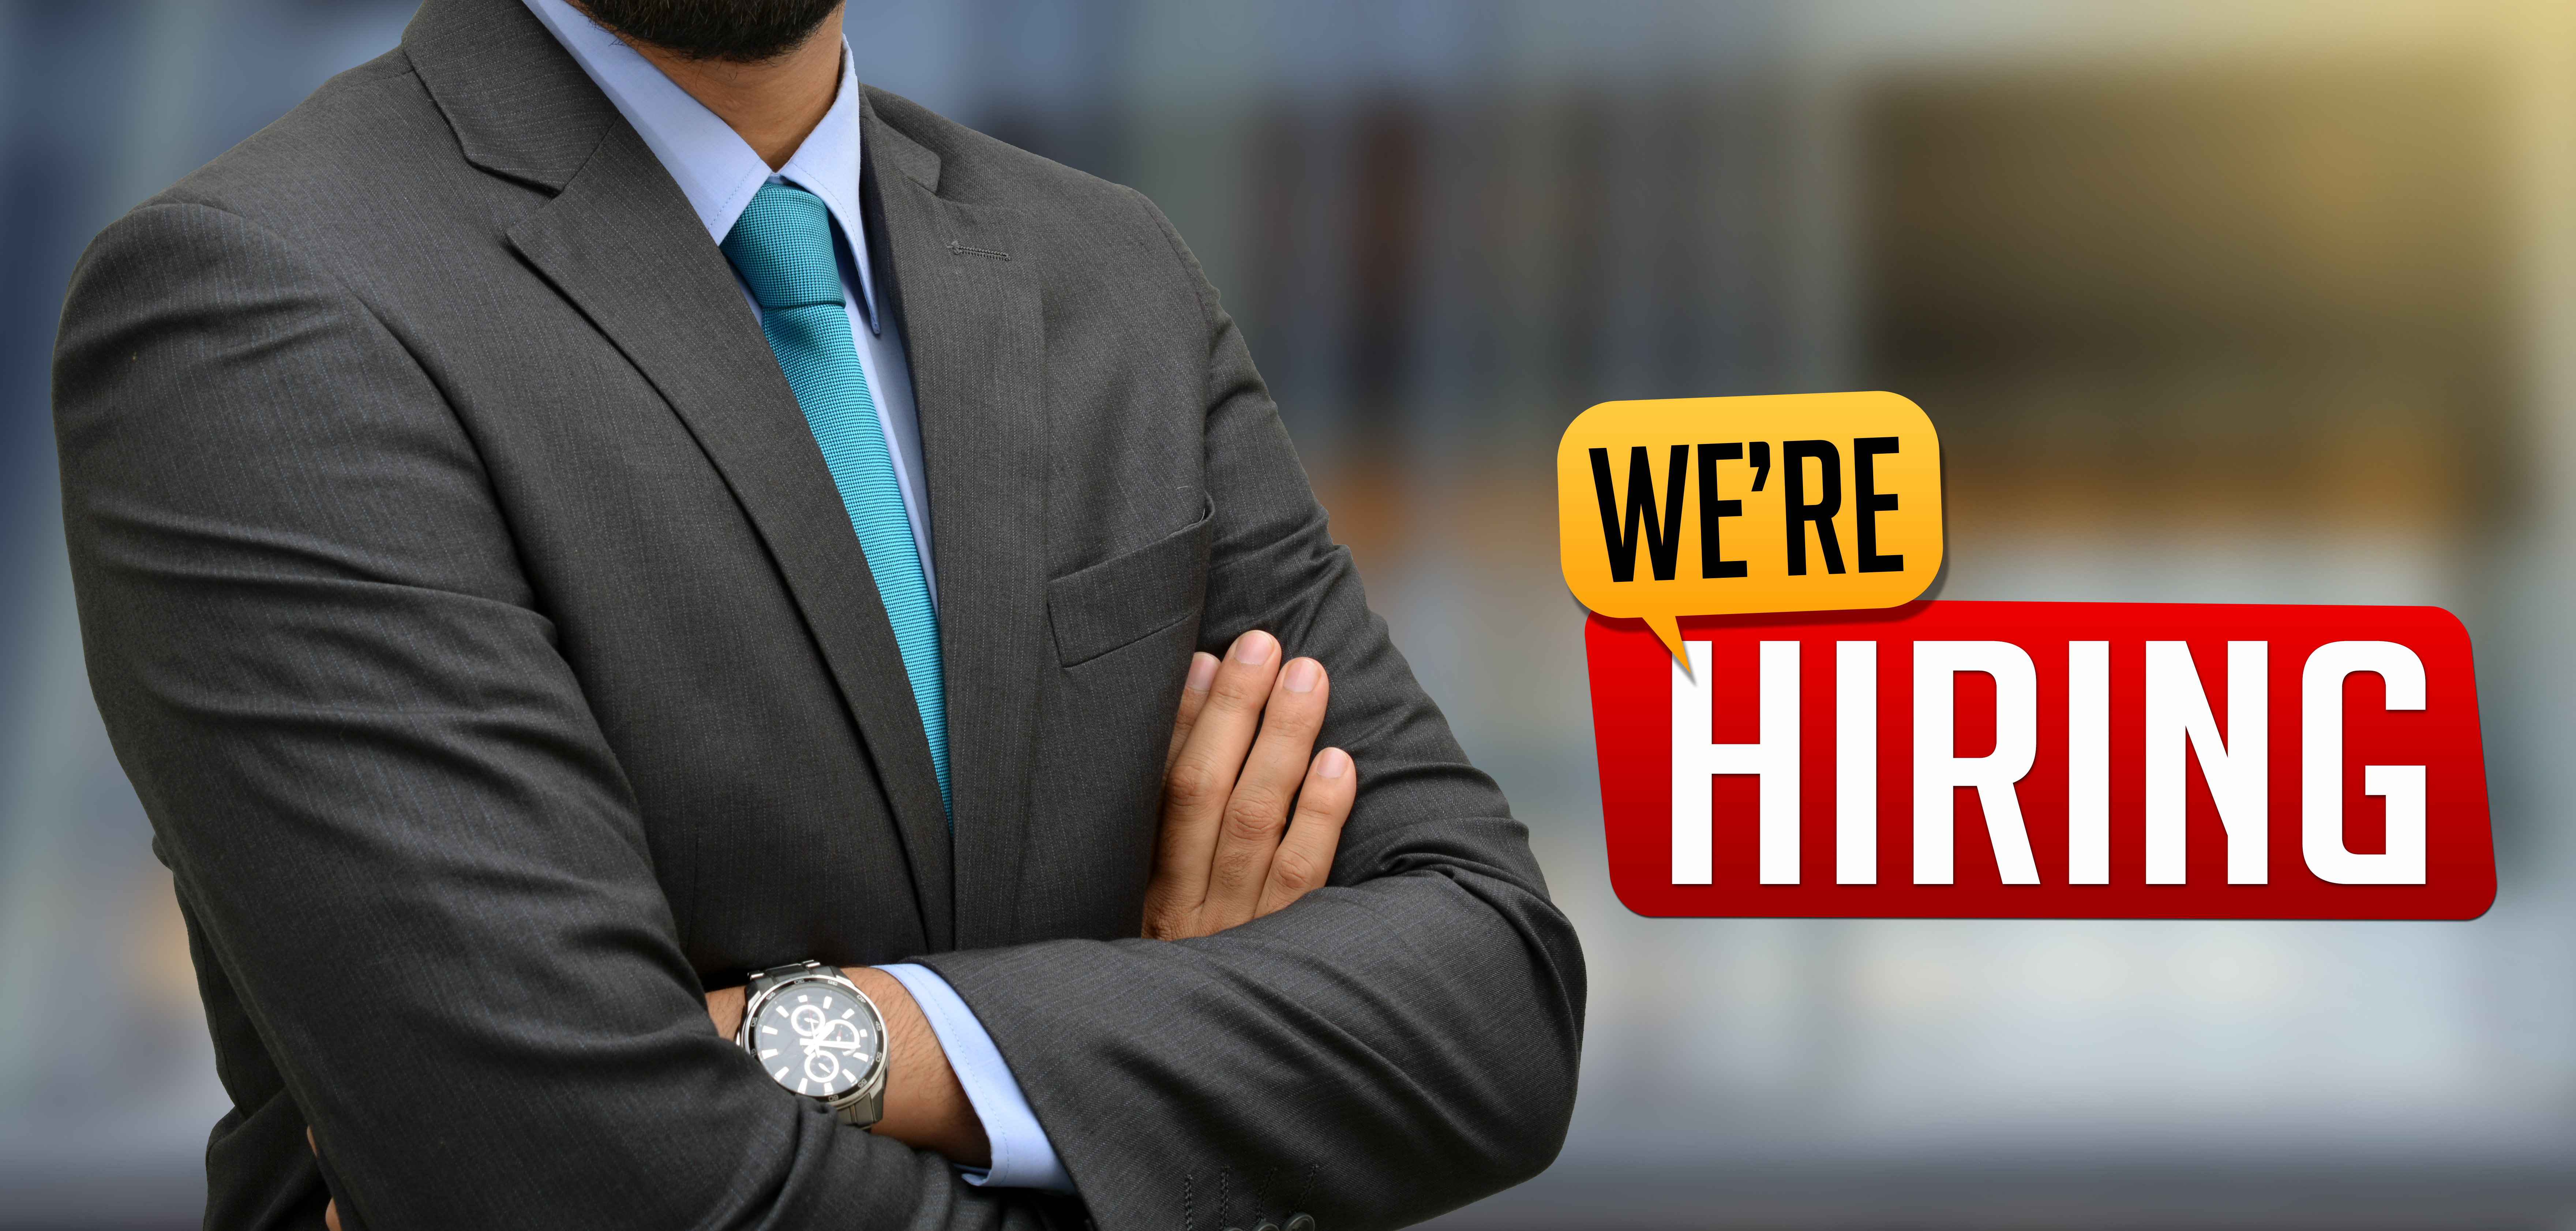 Professional with We are hiring Sign Banner.